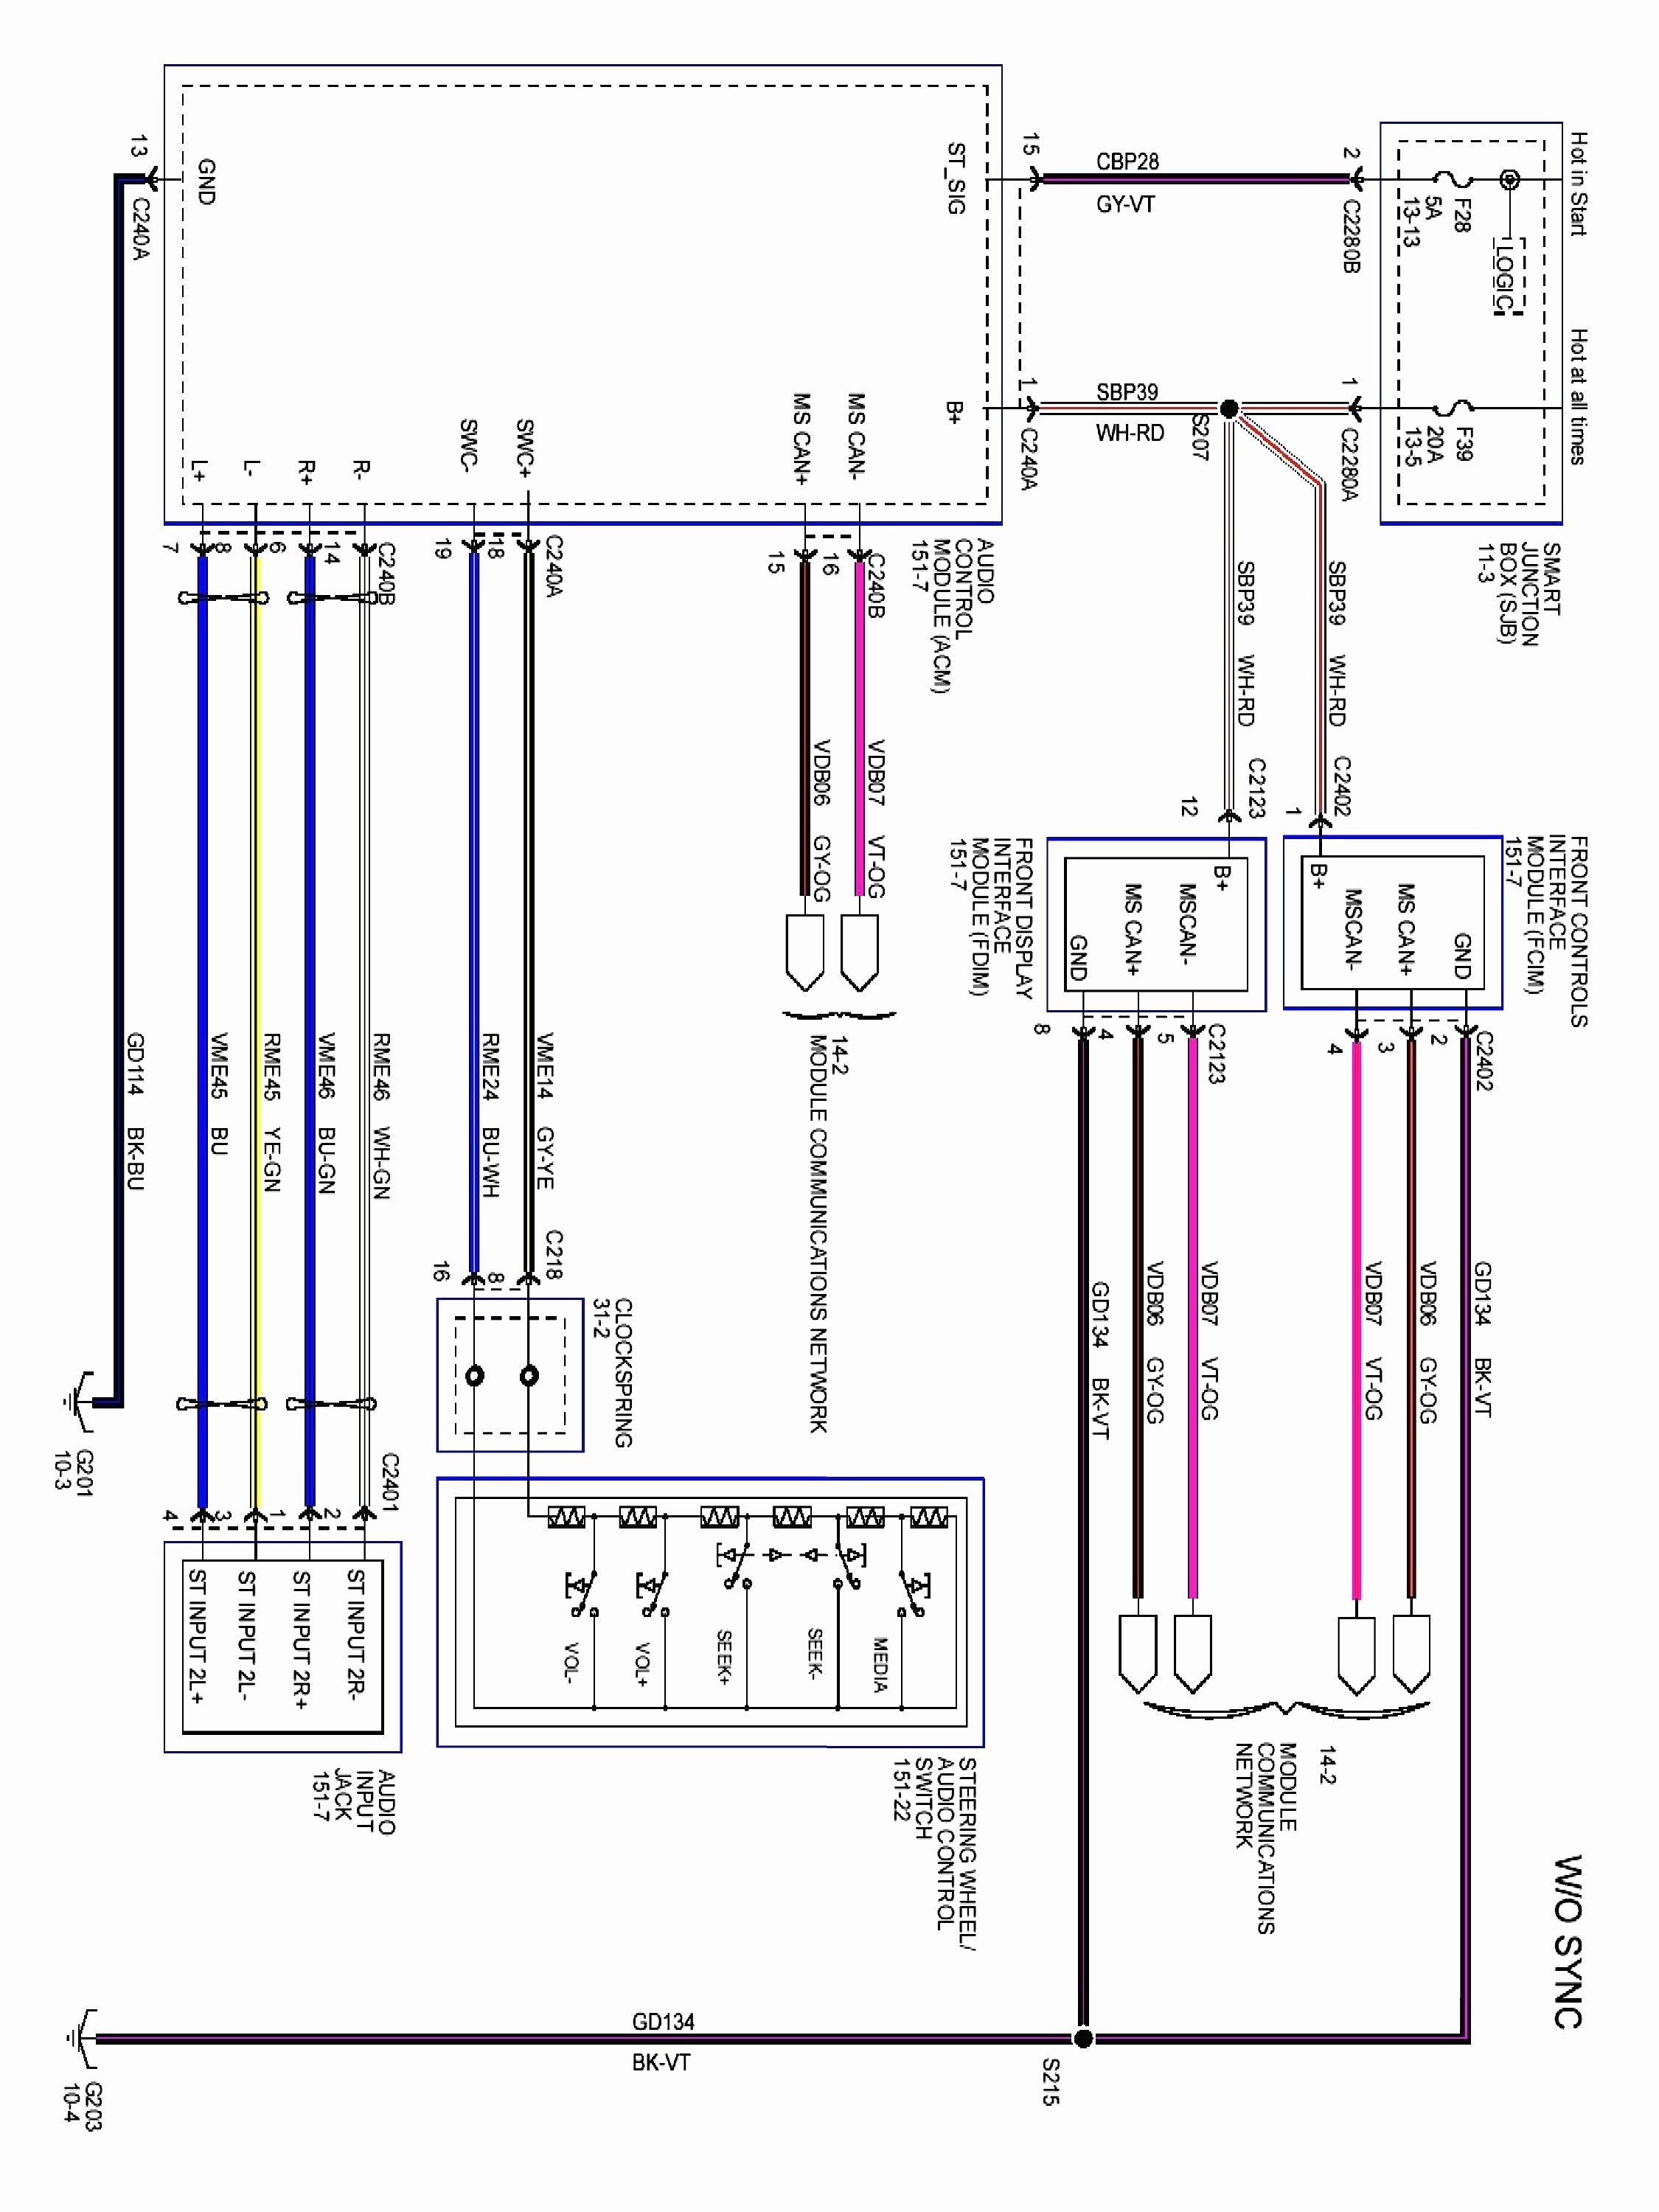 Car Stereo Wiring Diagram Wiring Diagram for Amplifier Car Stereo Best Amplifier Wiring Diagram Inspirational